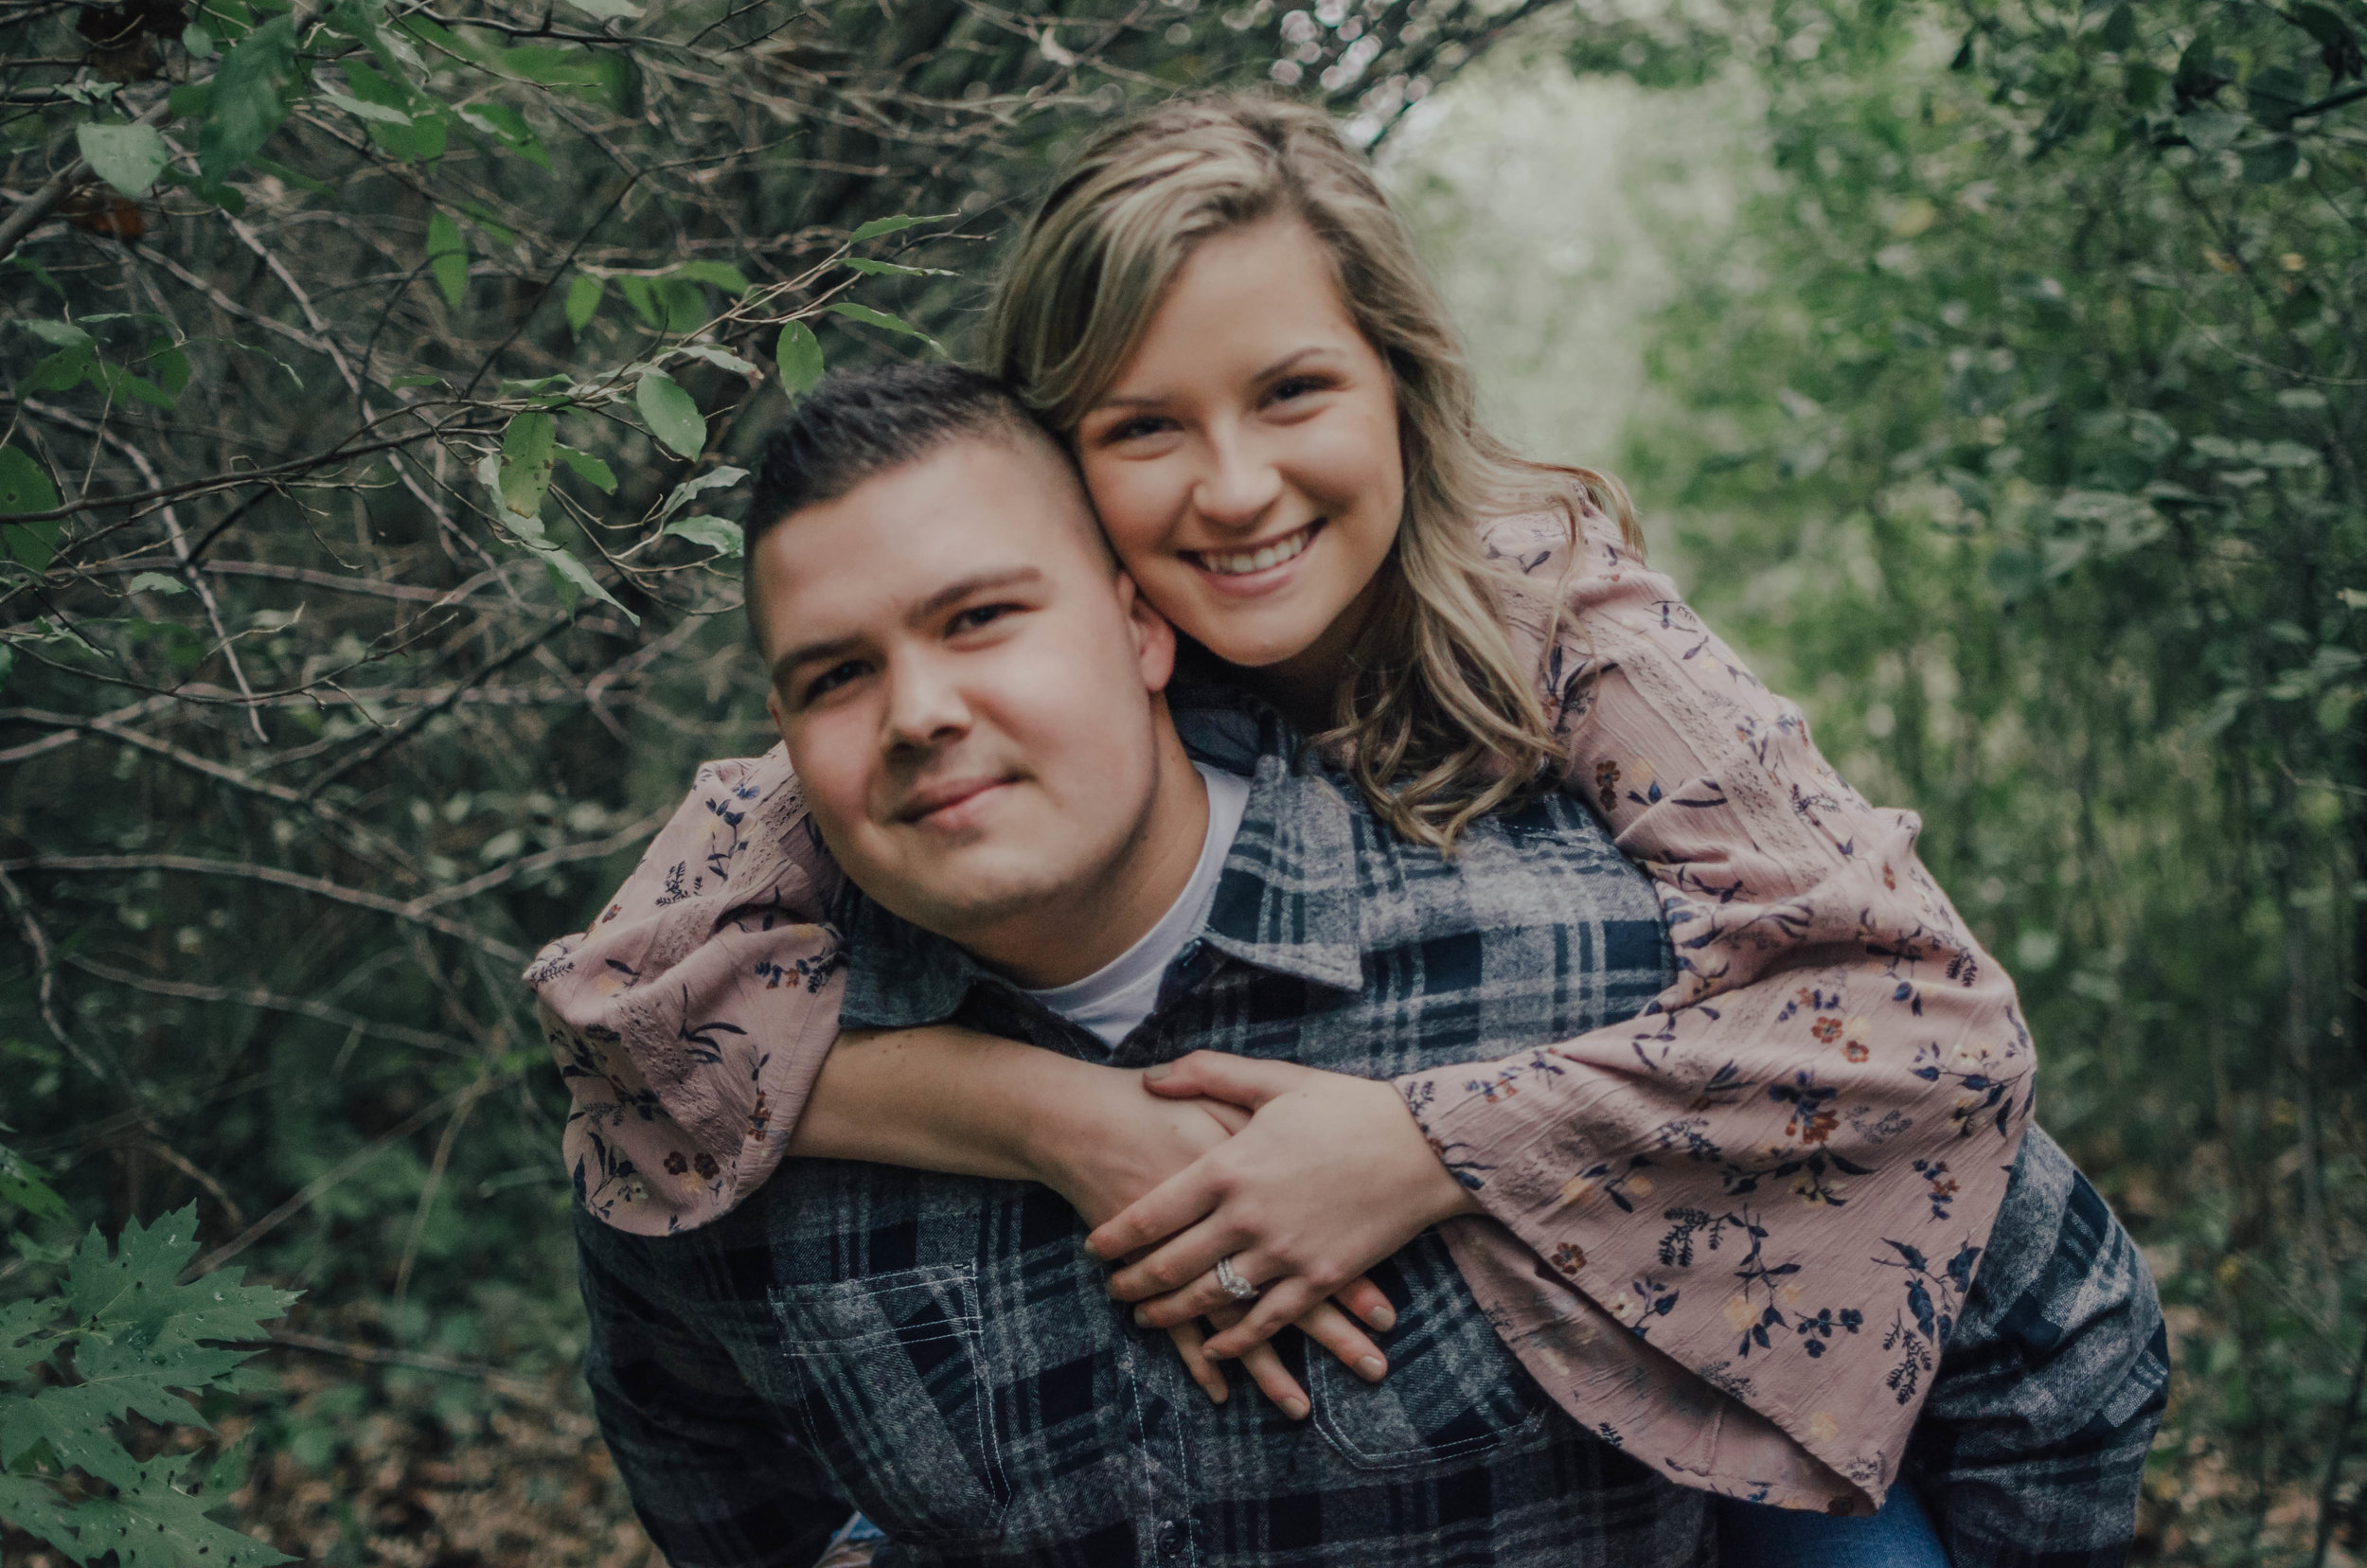 """Rustic & earthy… AMAZING - """"Our session was fun and laid back, the main focus was catching us in our natural form. I liked that you let us be ourselves. You were fun to work with and did whatever needed to get our pictures perfect (like standing in the rain).""""- Courtney & Logan"""